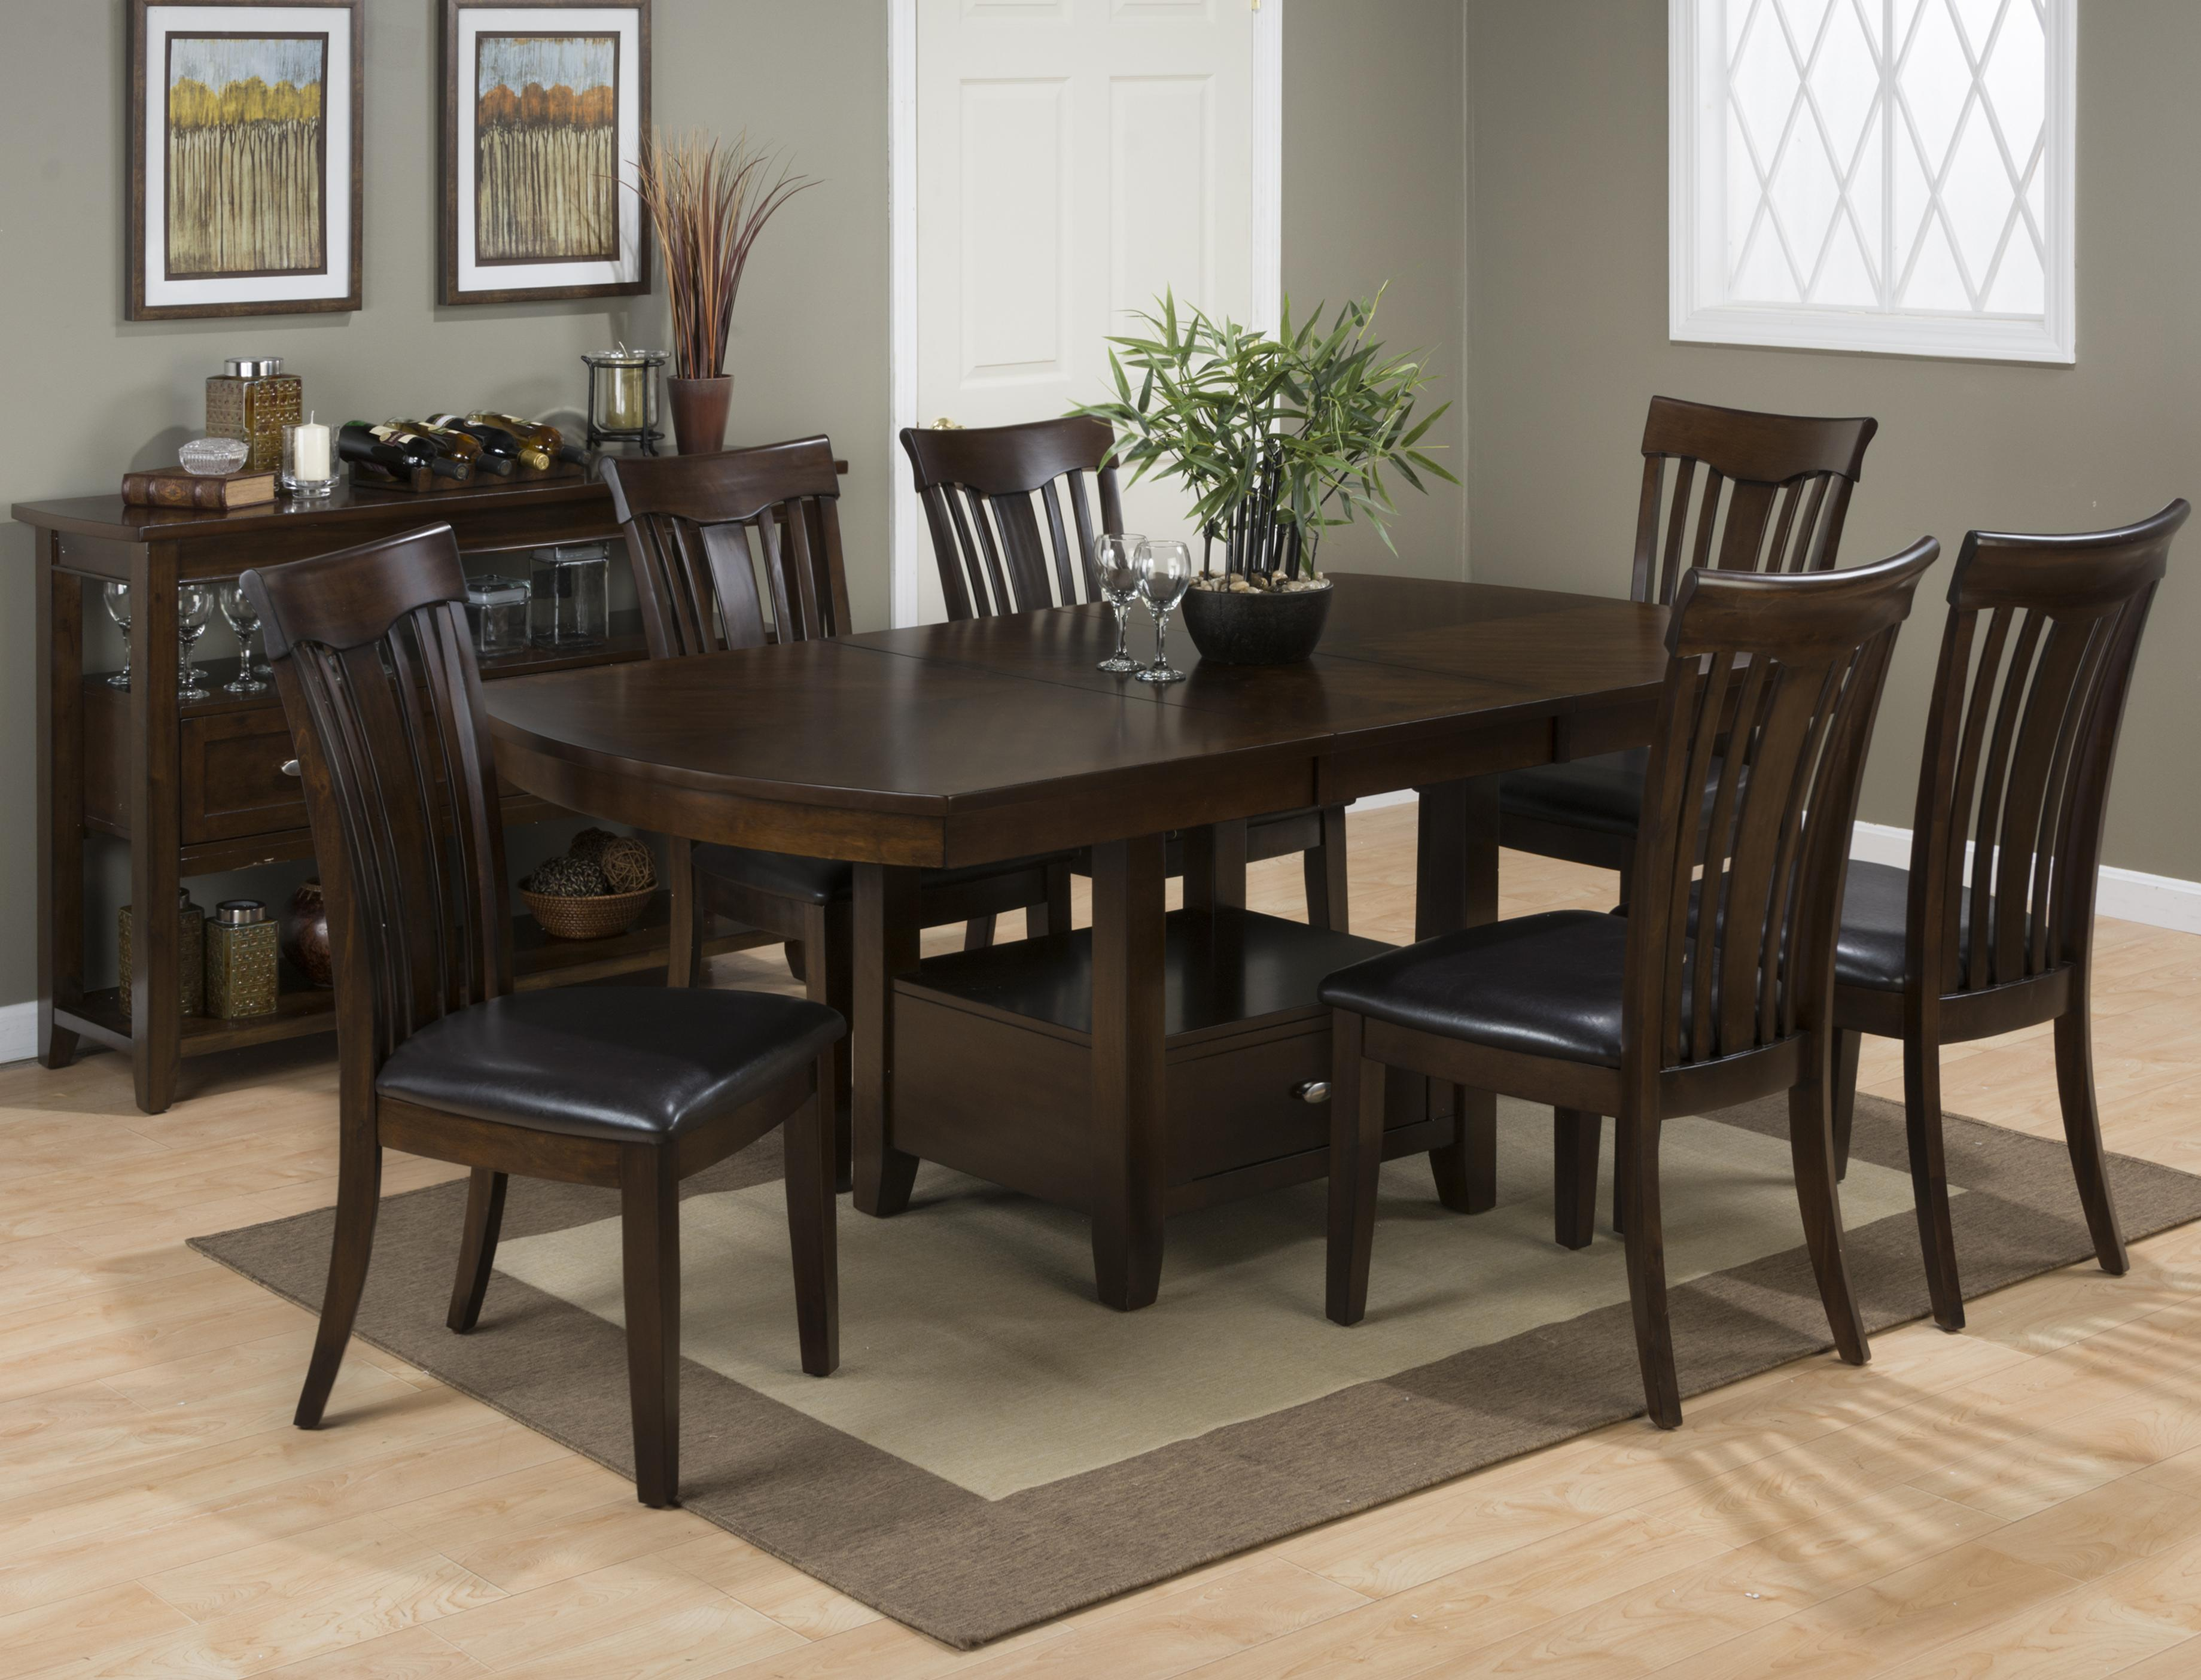 Tavia 7PC Dining Table U0026 Chair Set W/ Padded Chair Cushions   Rotmans    Dining 7 (or More) Piece Set Worcester, Boston, MA, Providence, RI, And New  England